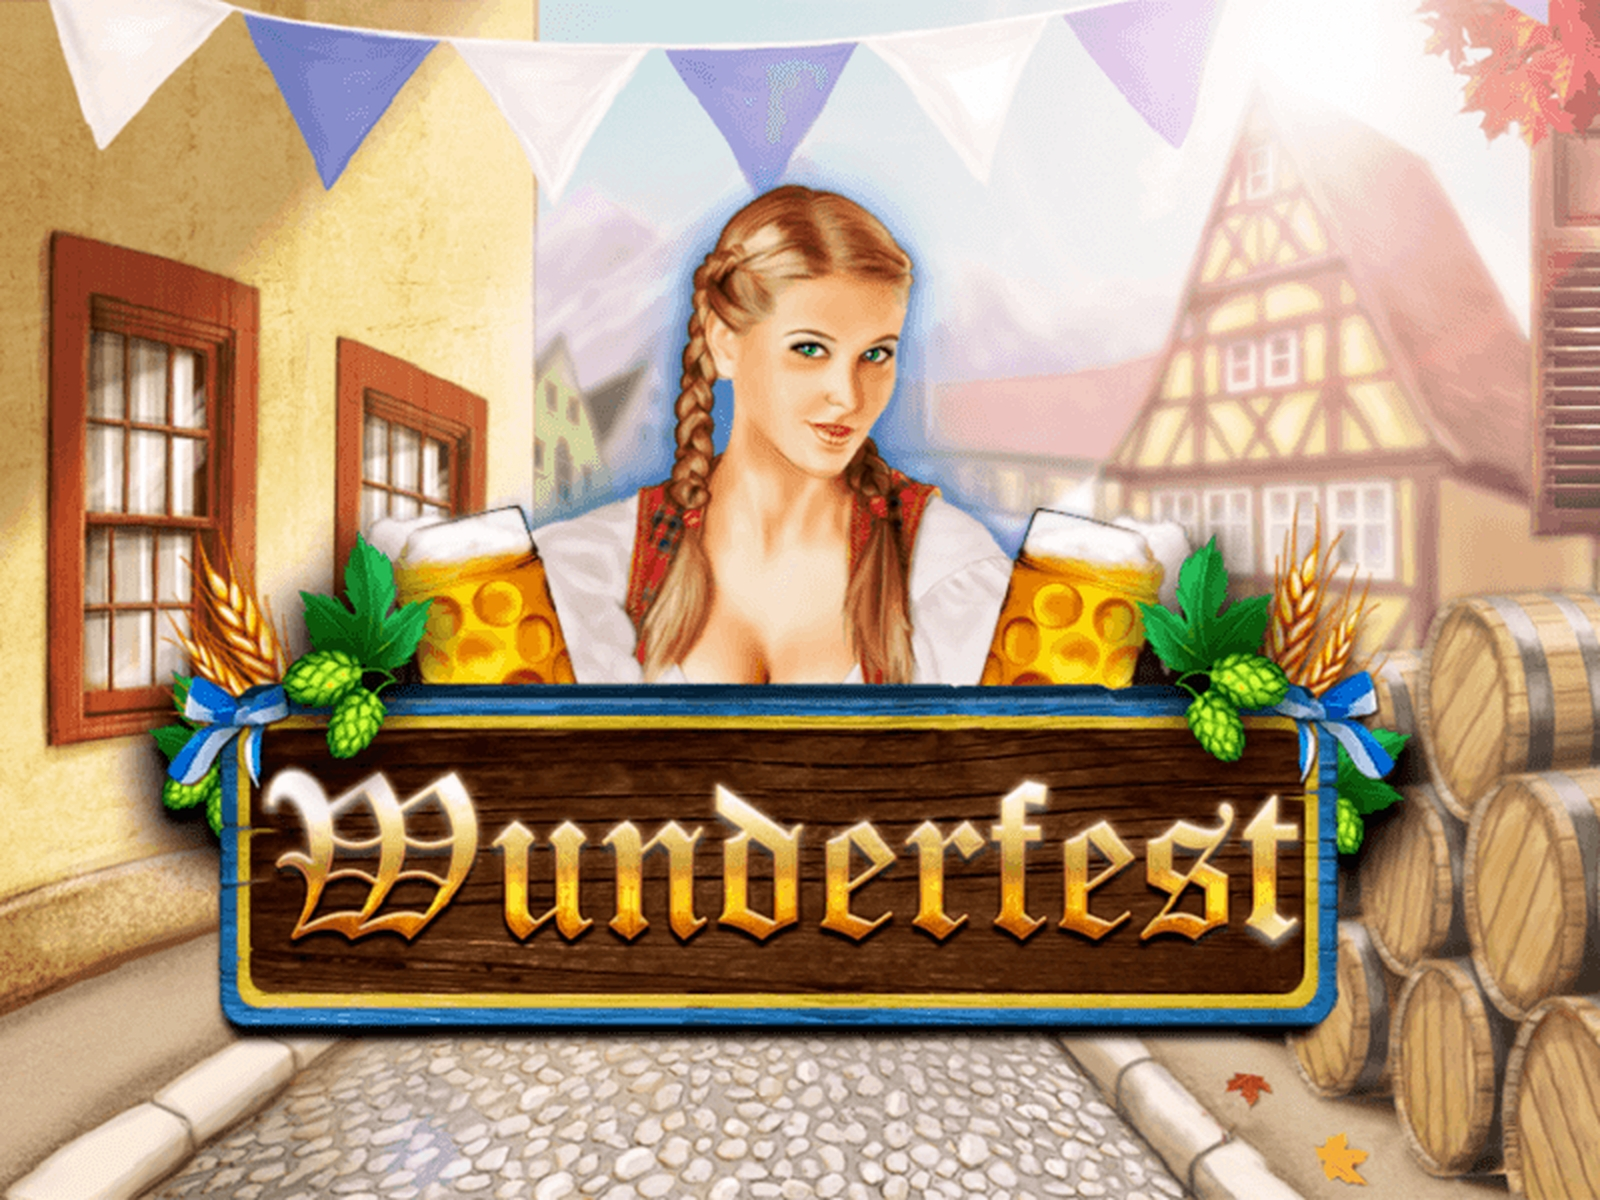 The Wunderfest Online Slot Demo Game by Booming Games